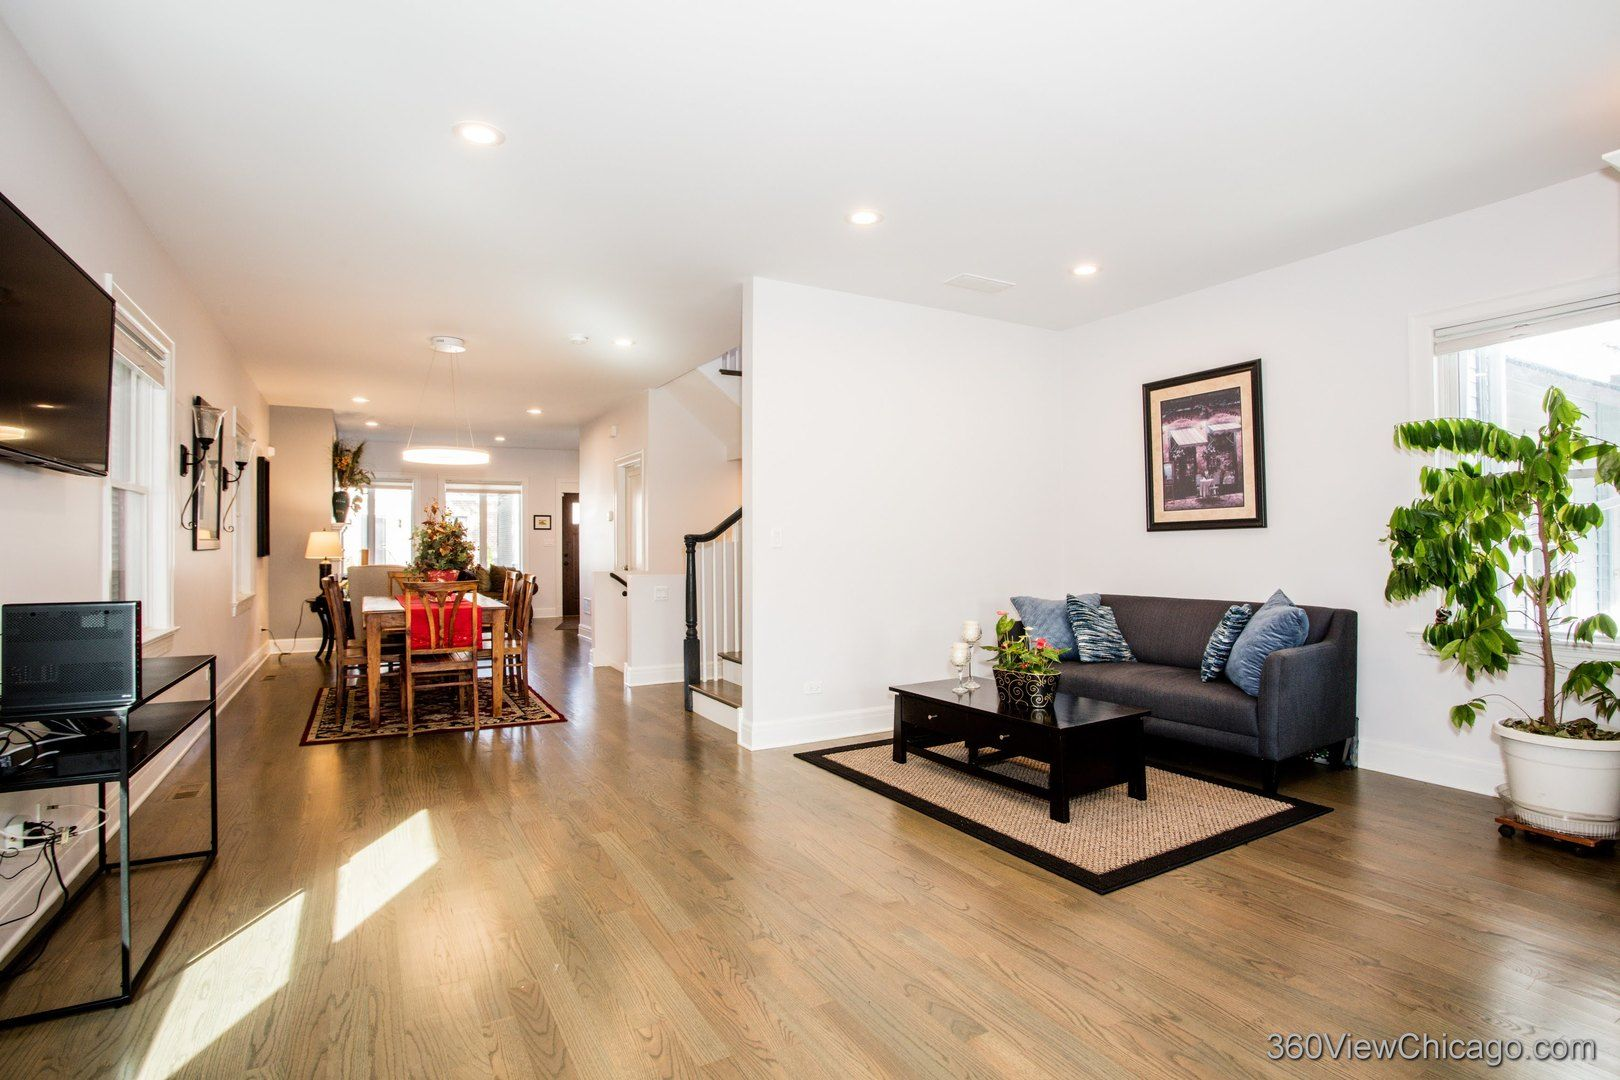 Photo 9: Photos: 1733 Troy Street in Chicago: CHI - Humboldt Park Residential for sale ()  : MLS®# 10911567